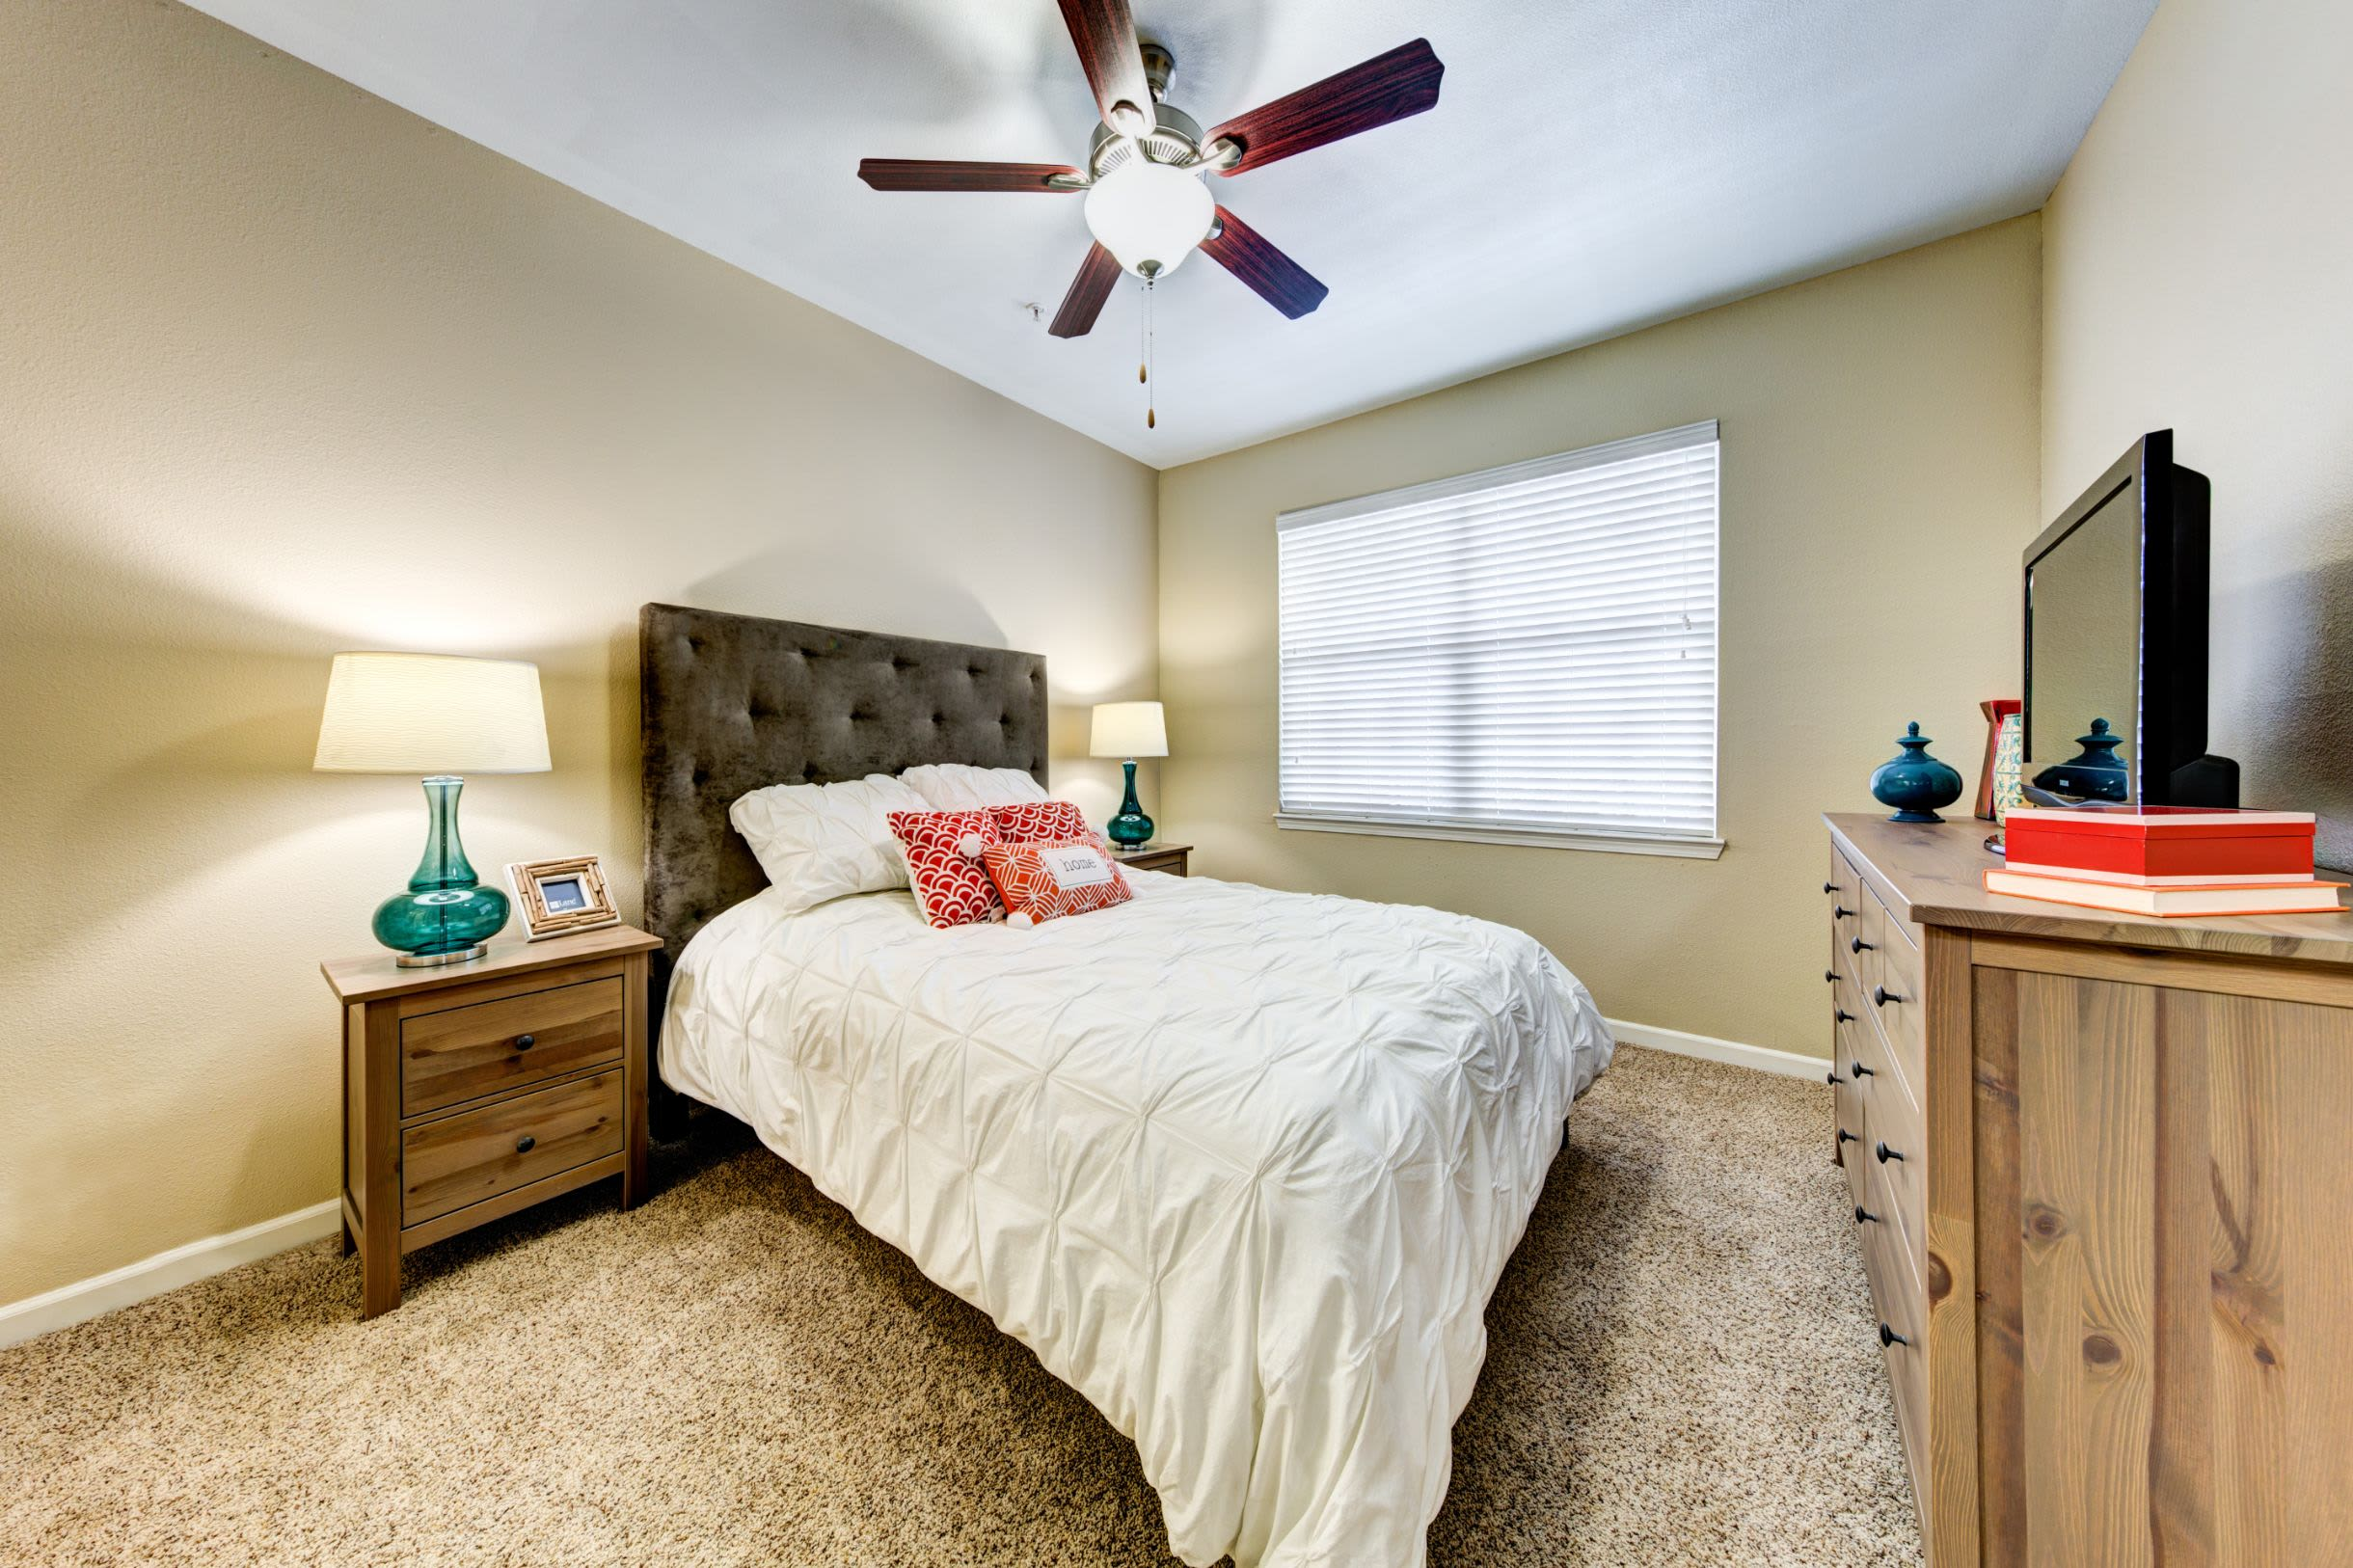 Bedroom with a ceiling fan at Marquis at Town Centre in Broomfield, Colorado